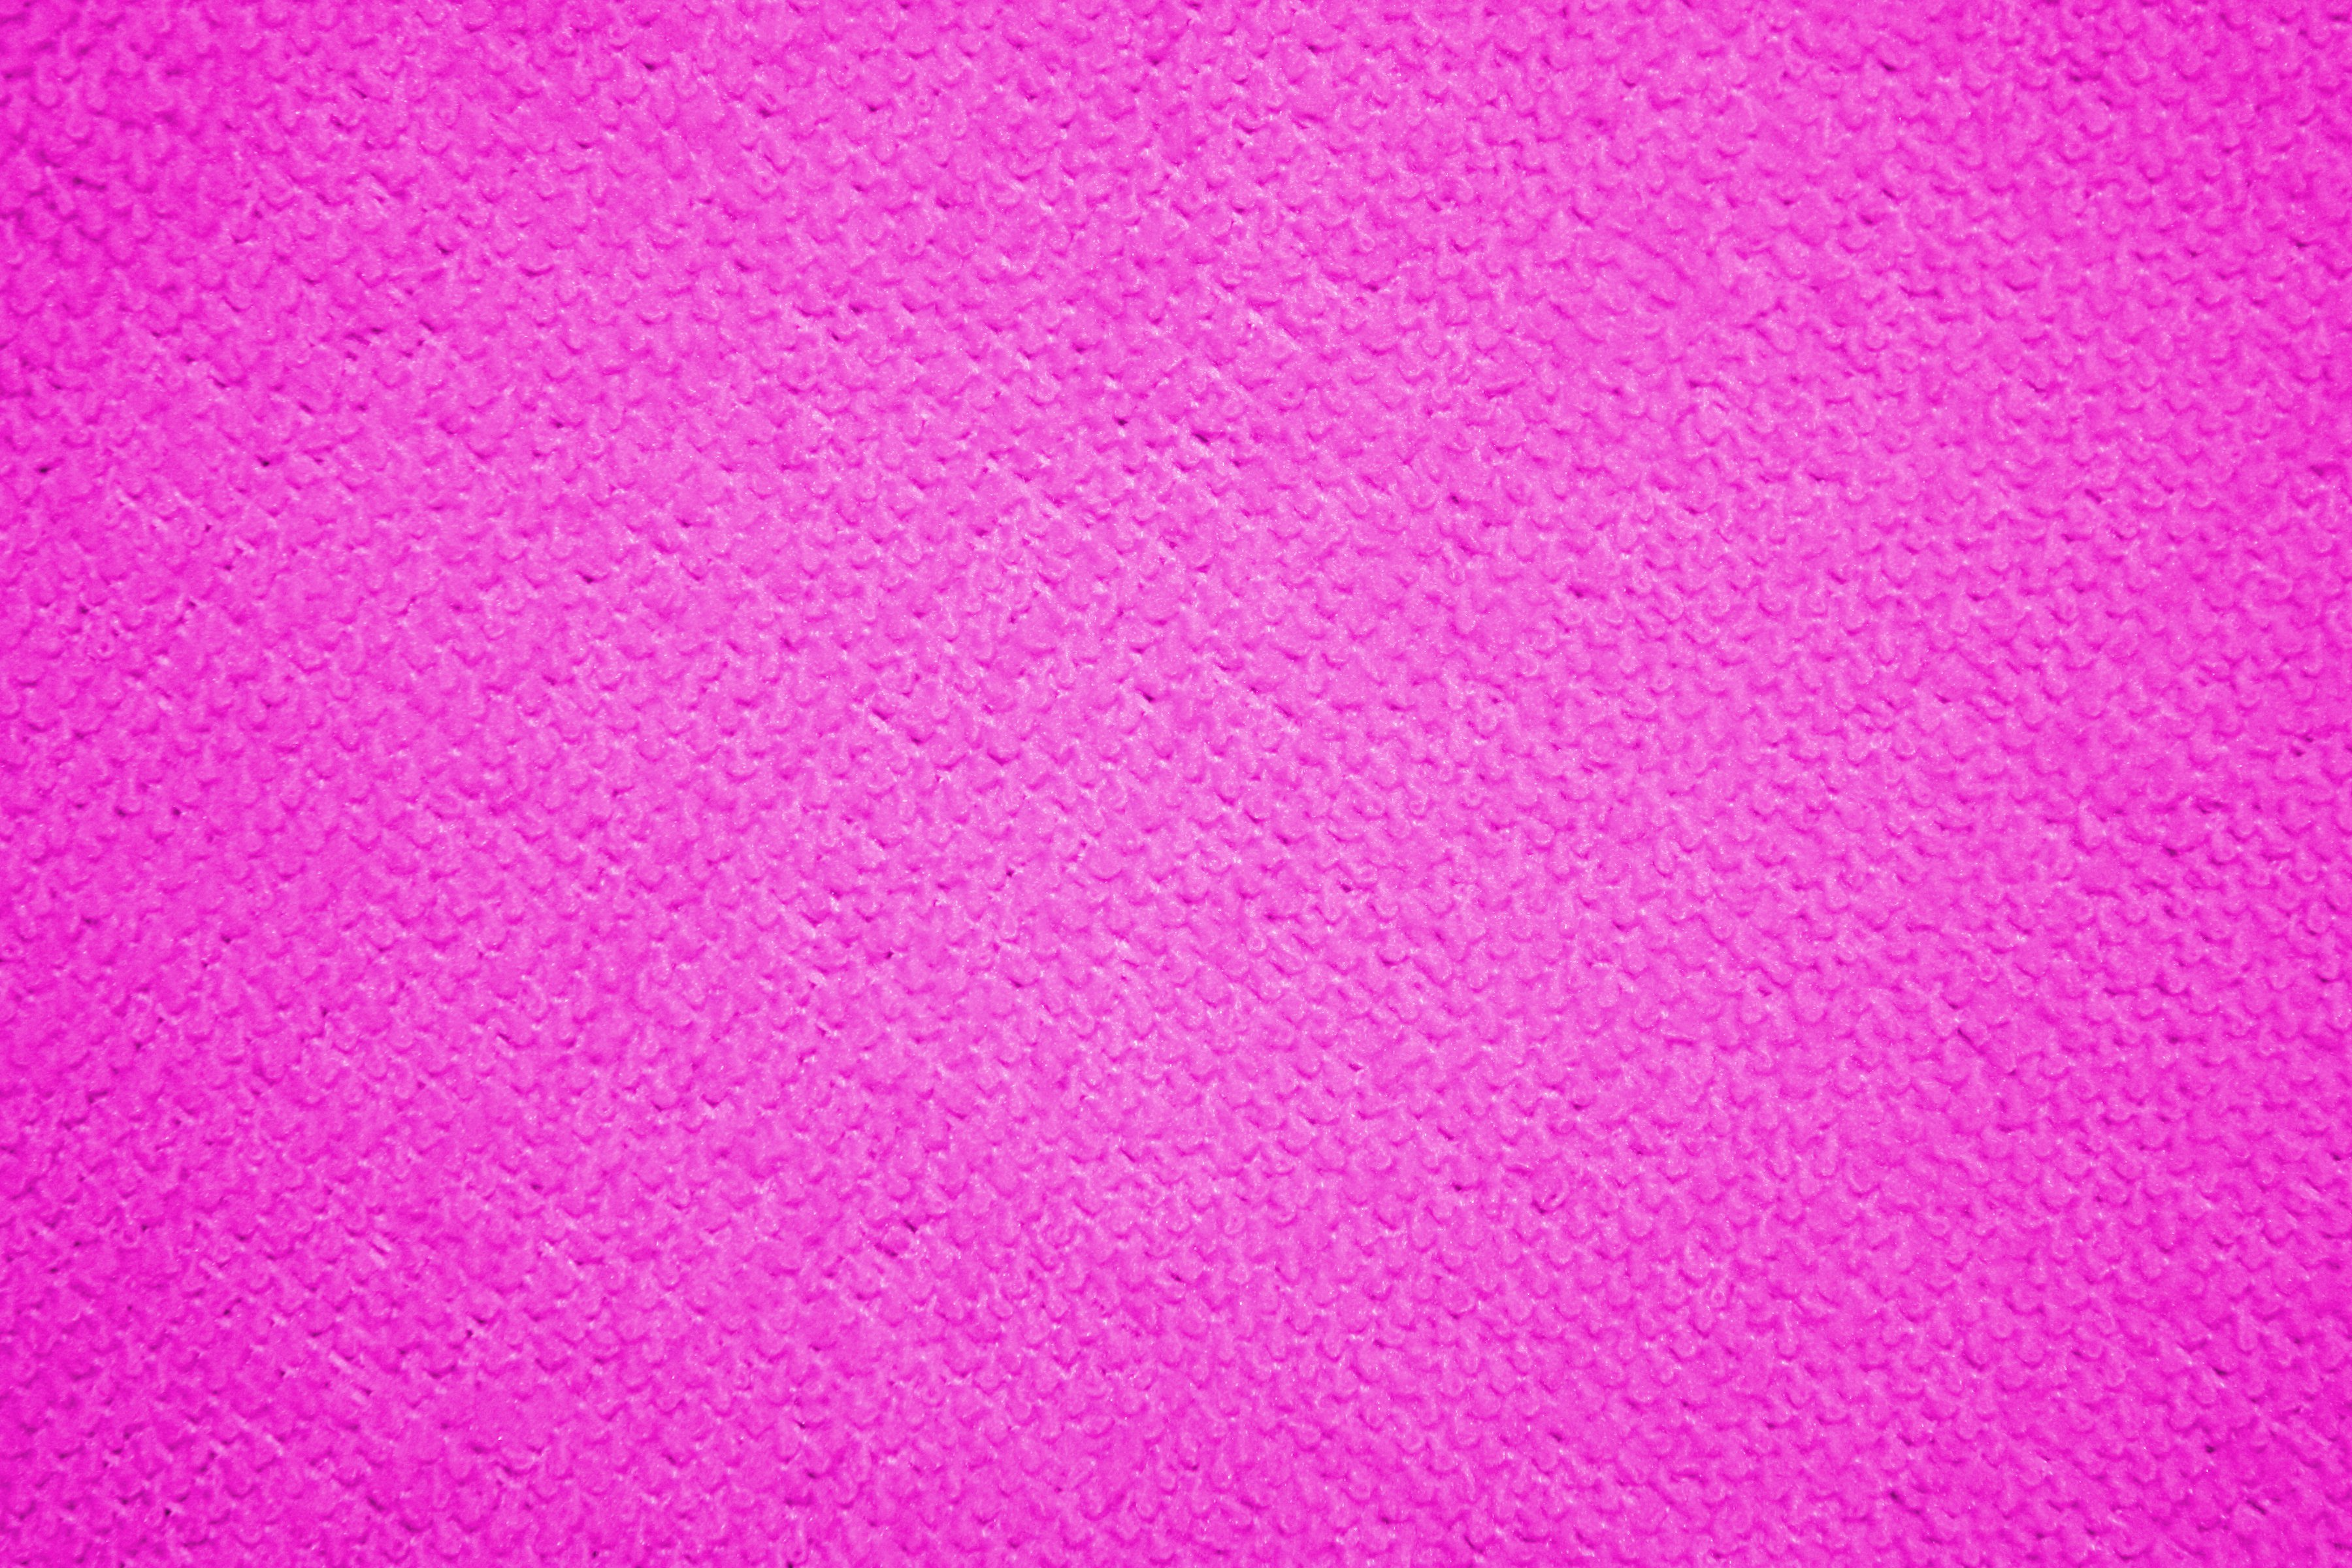 Hot Pink Microfiber Cloth Fabric Texture Picture Free